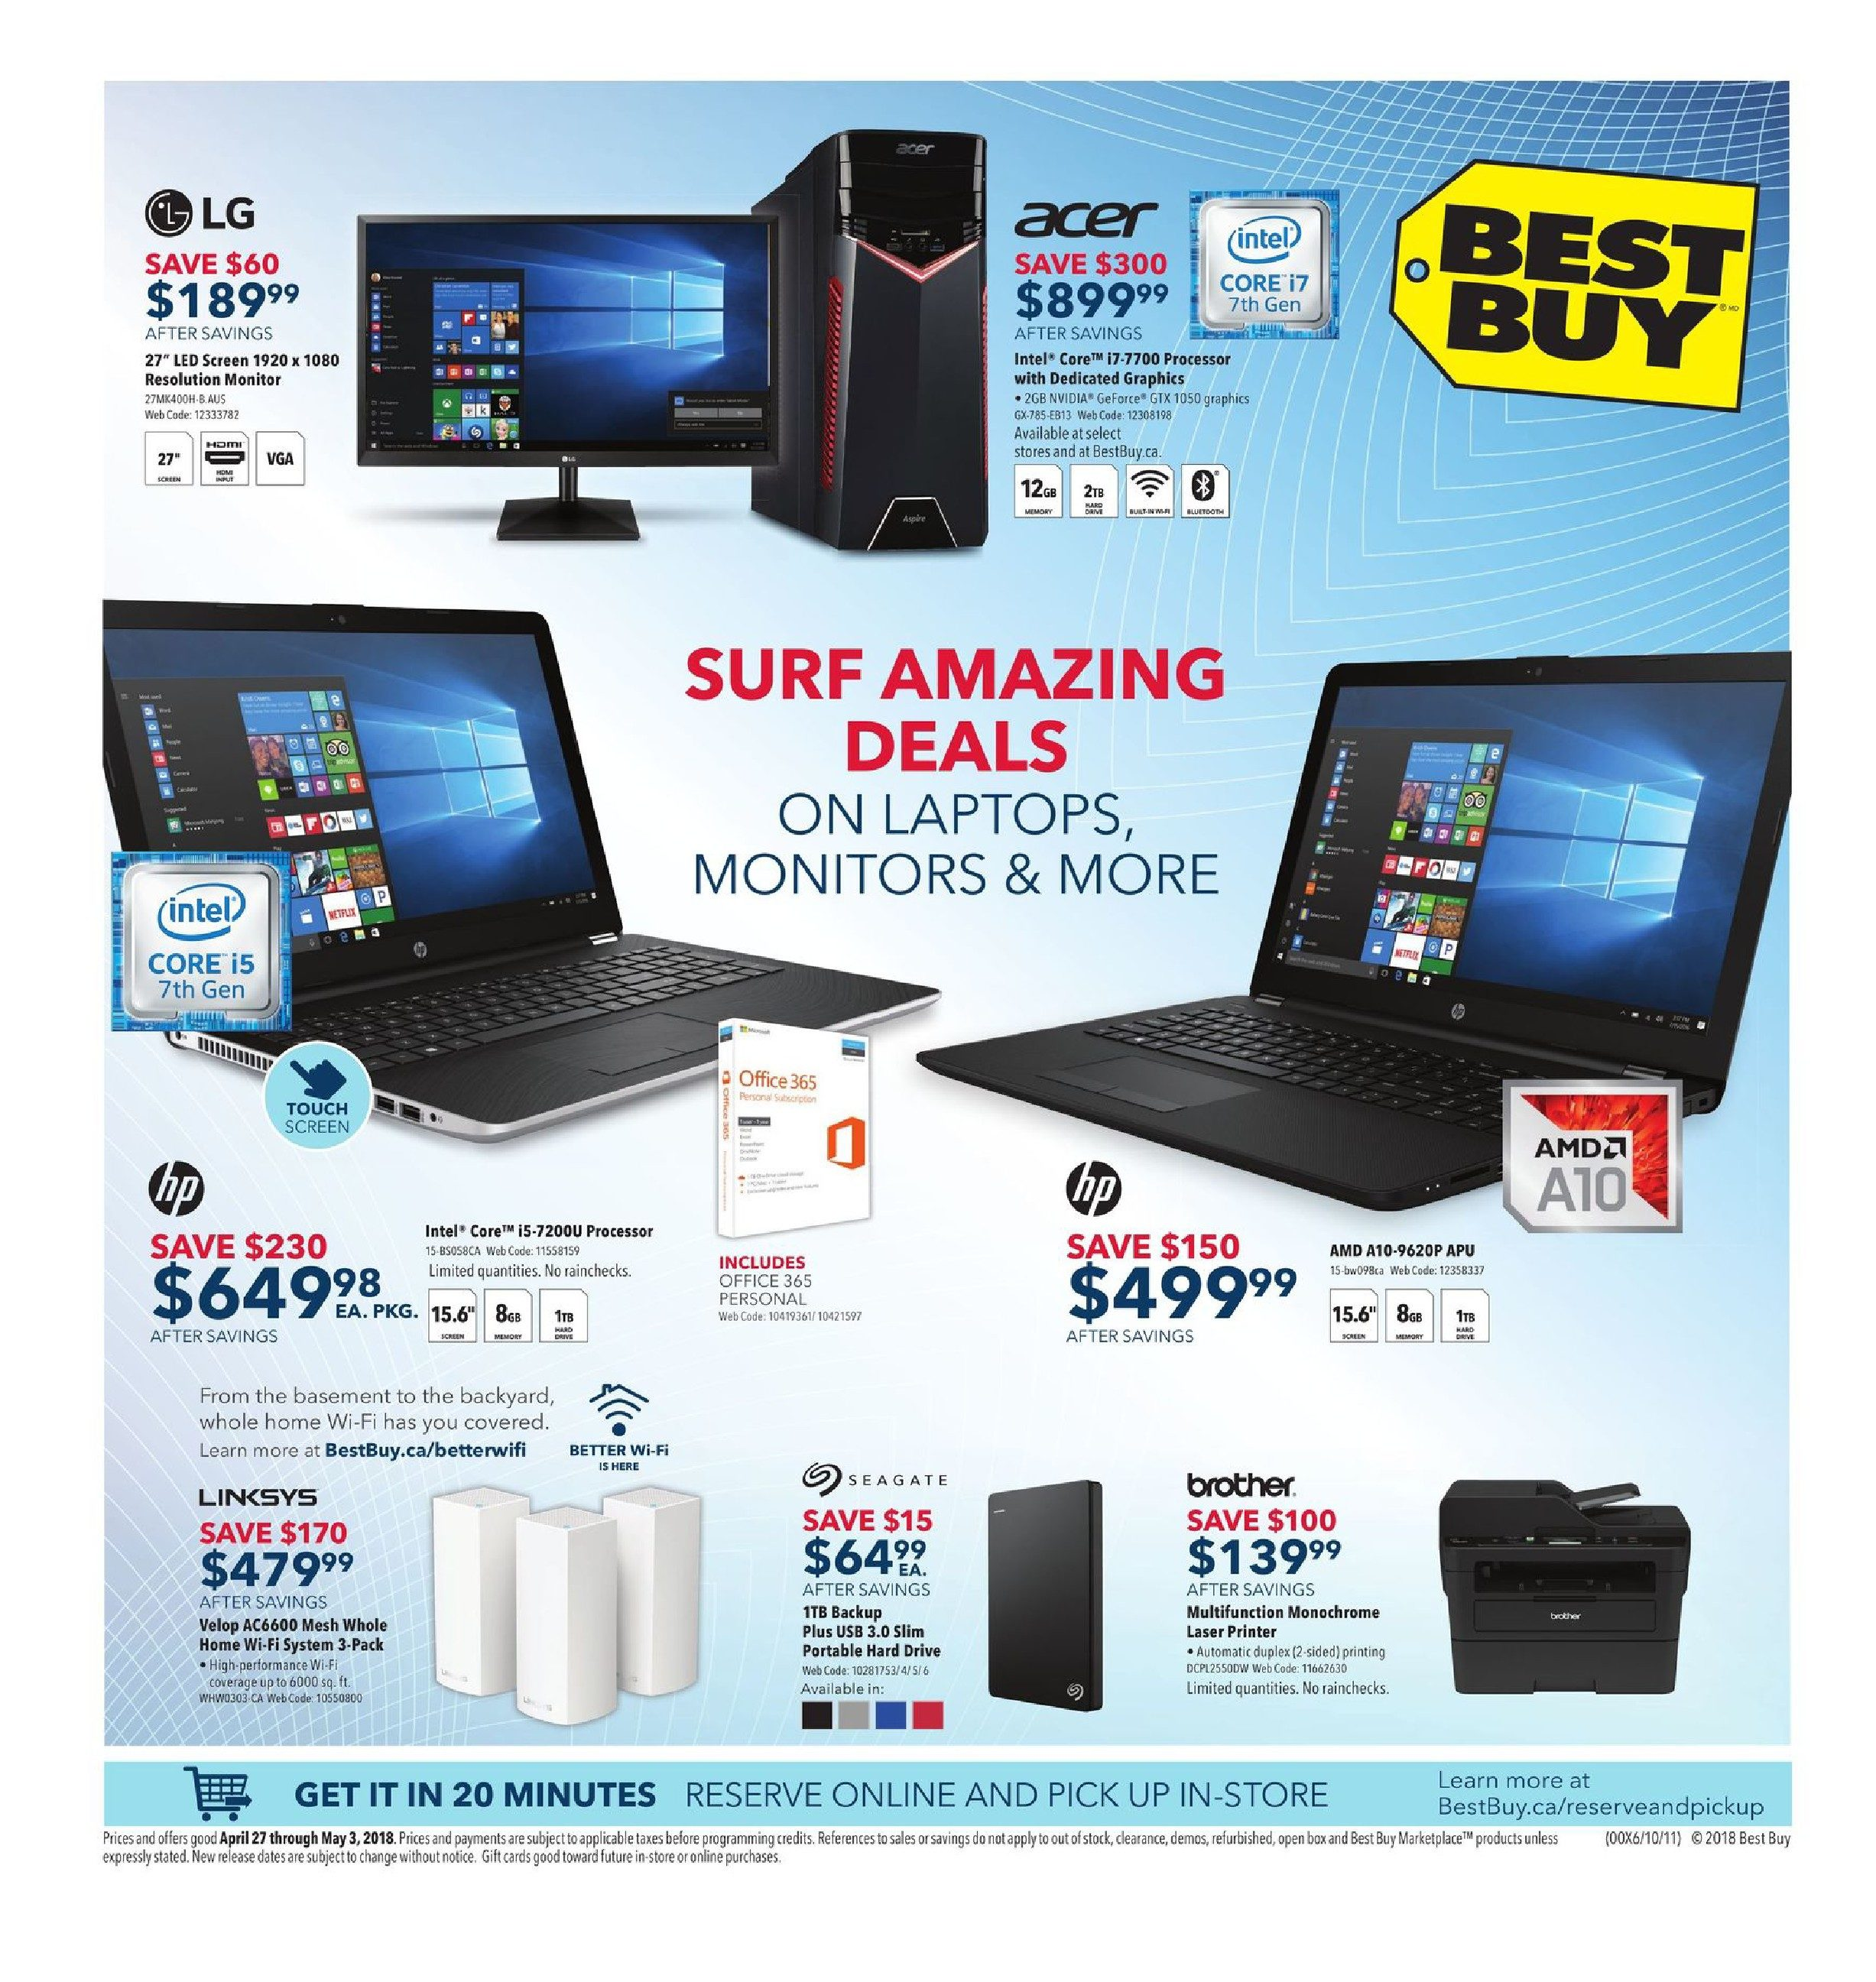 c1bad46e113 Best Buy Weekly Flyer - Weekly - Surf Amazing Deals - Apr 27 – May 3 -  RedFlagDeals.com